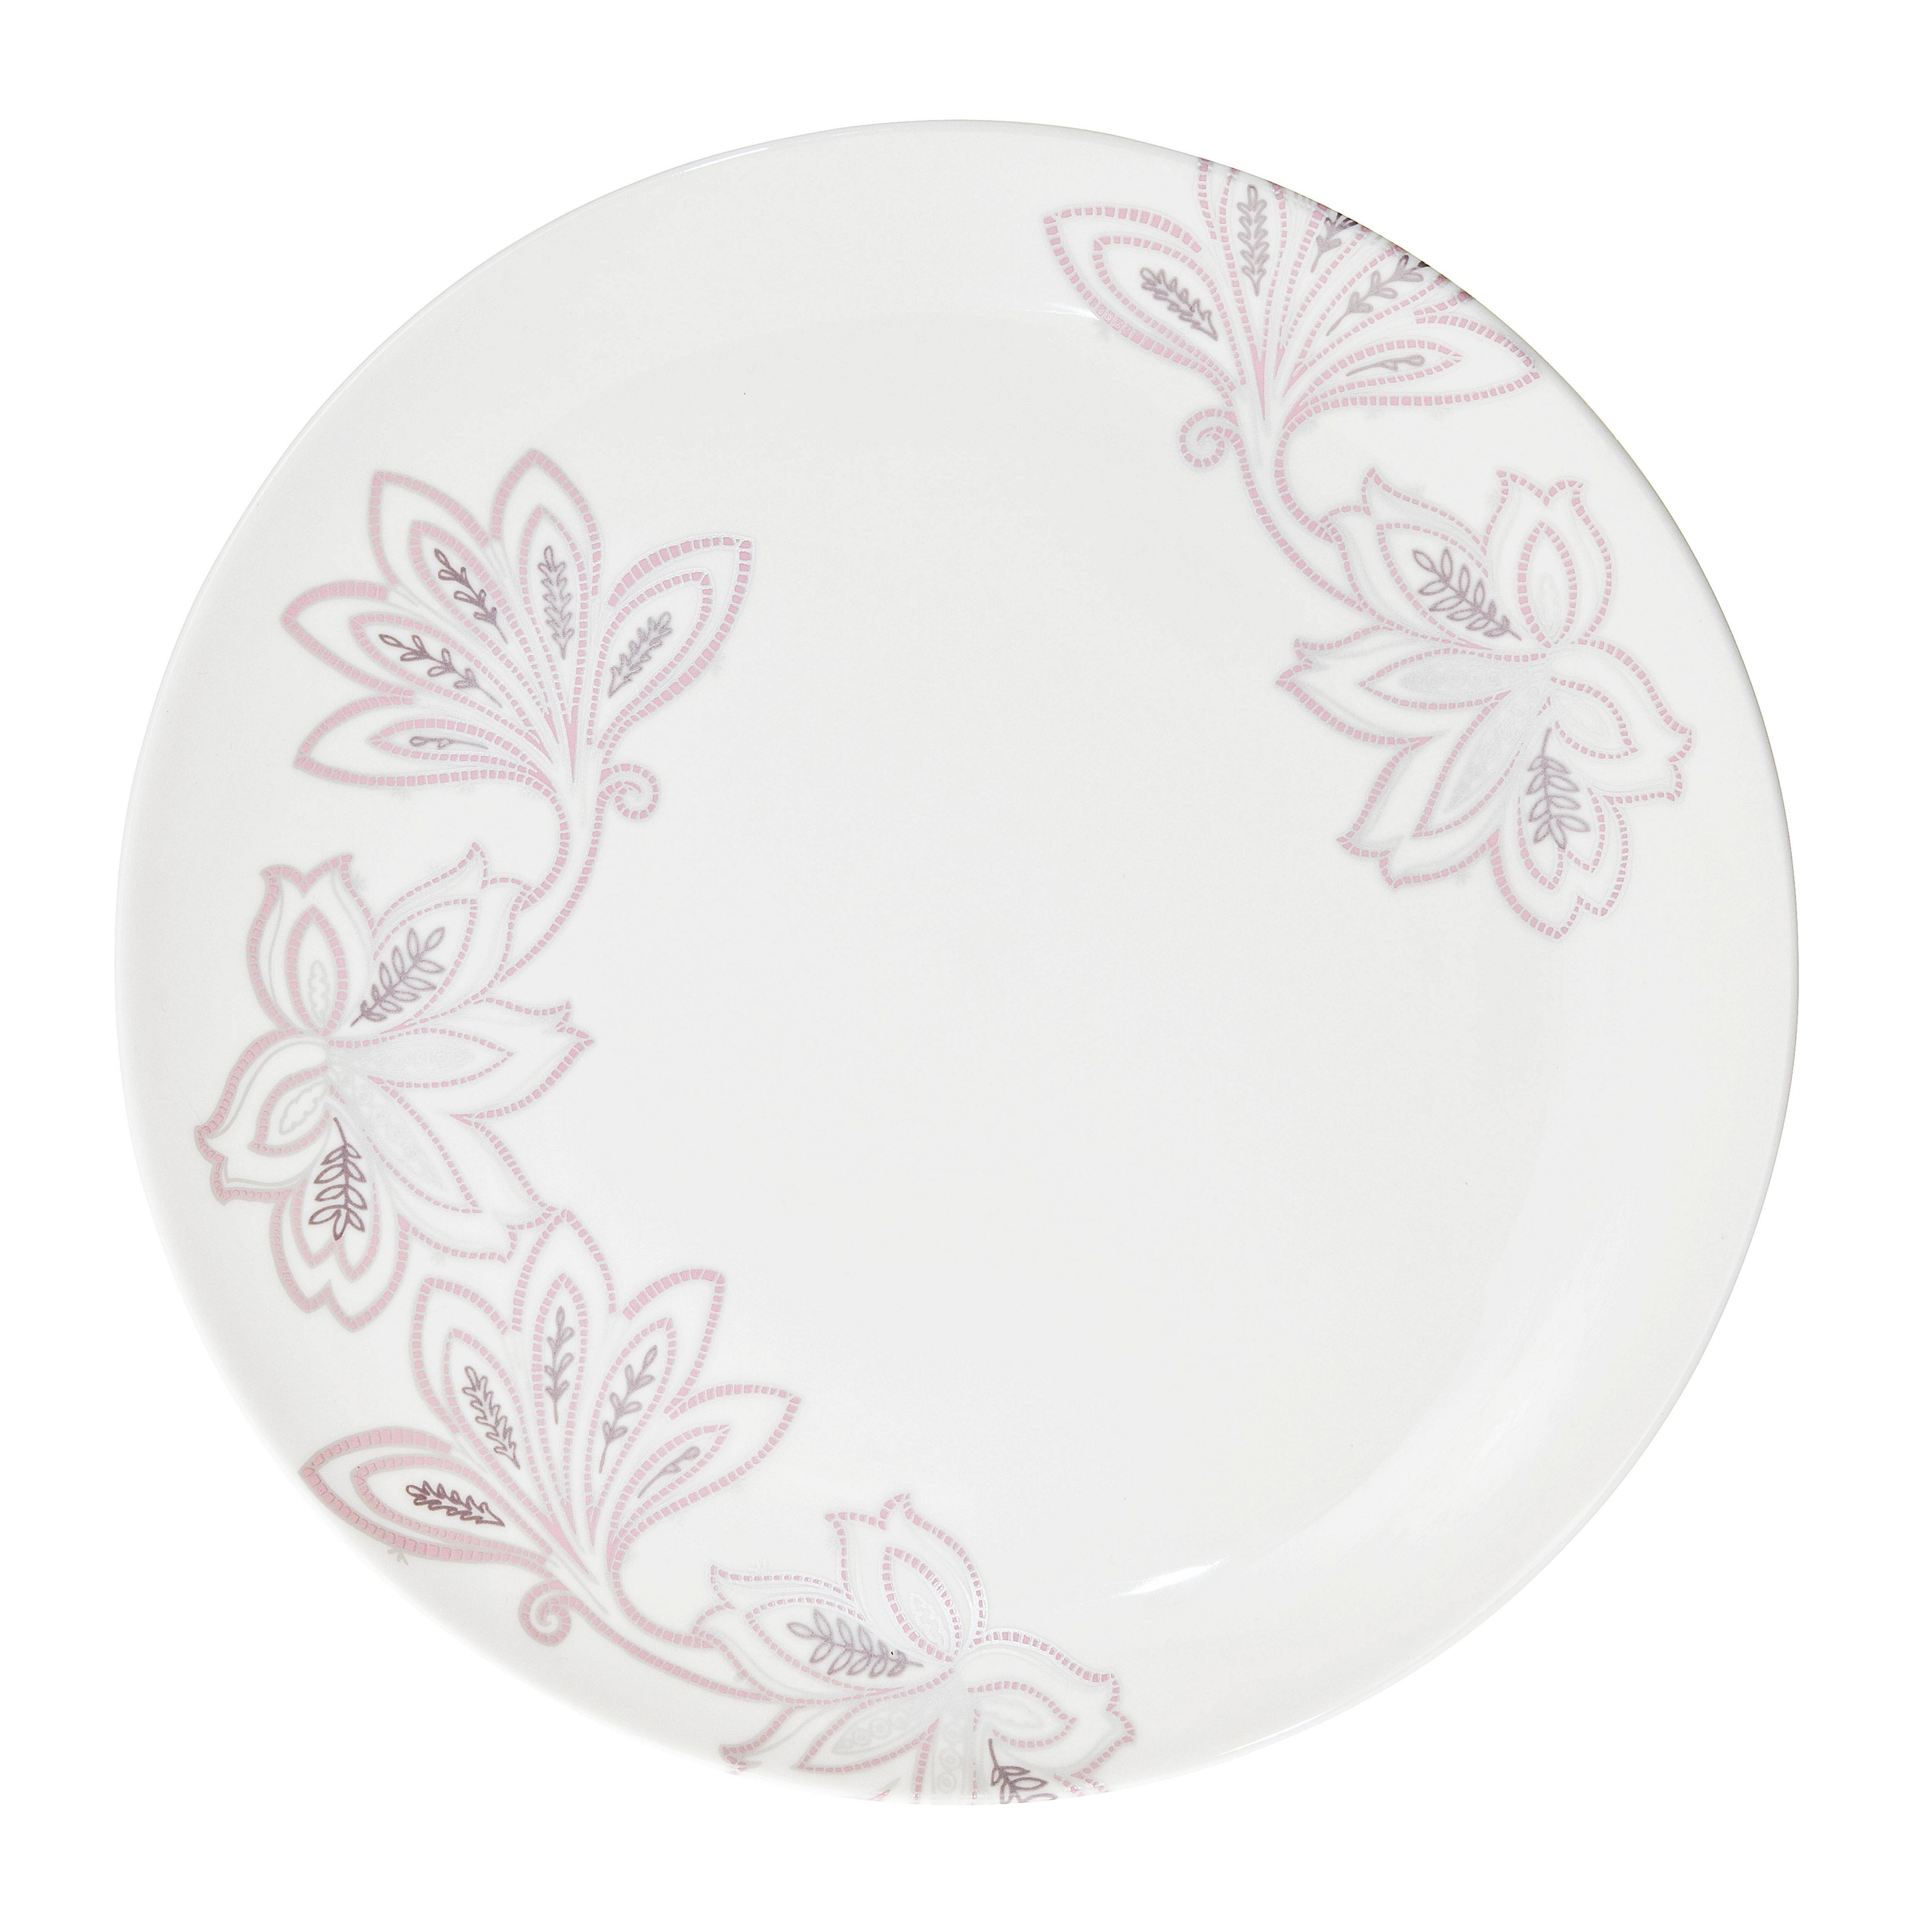 Chantilly dinner plate, cream